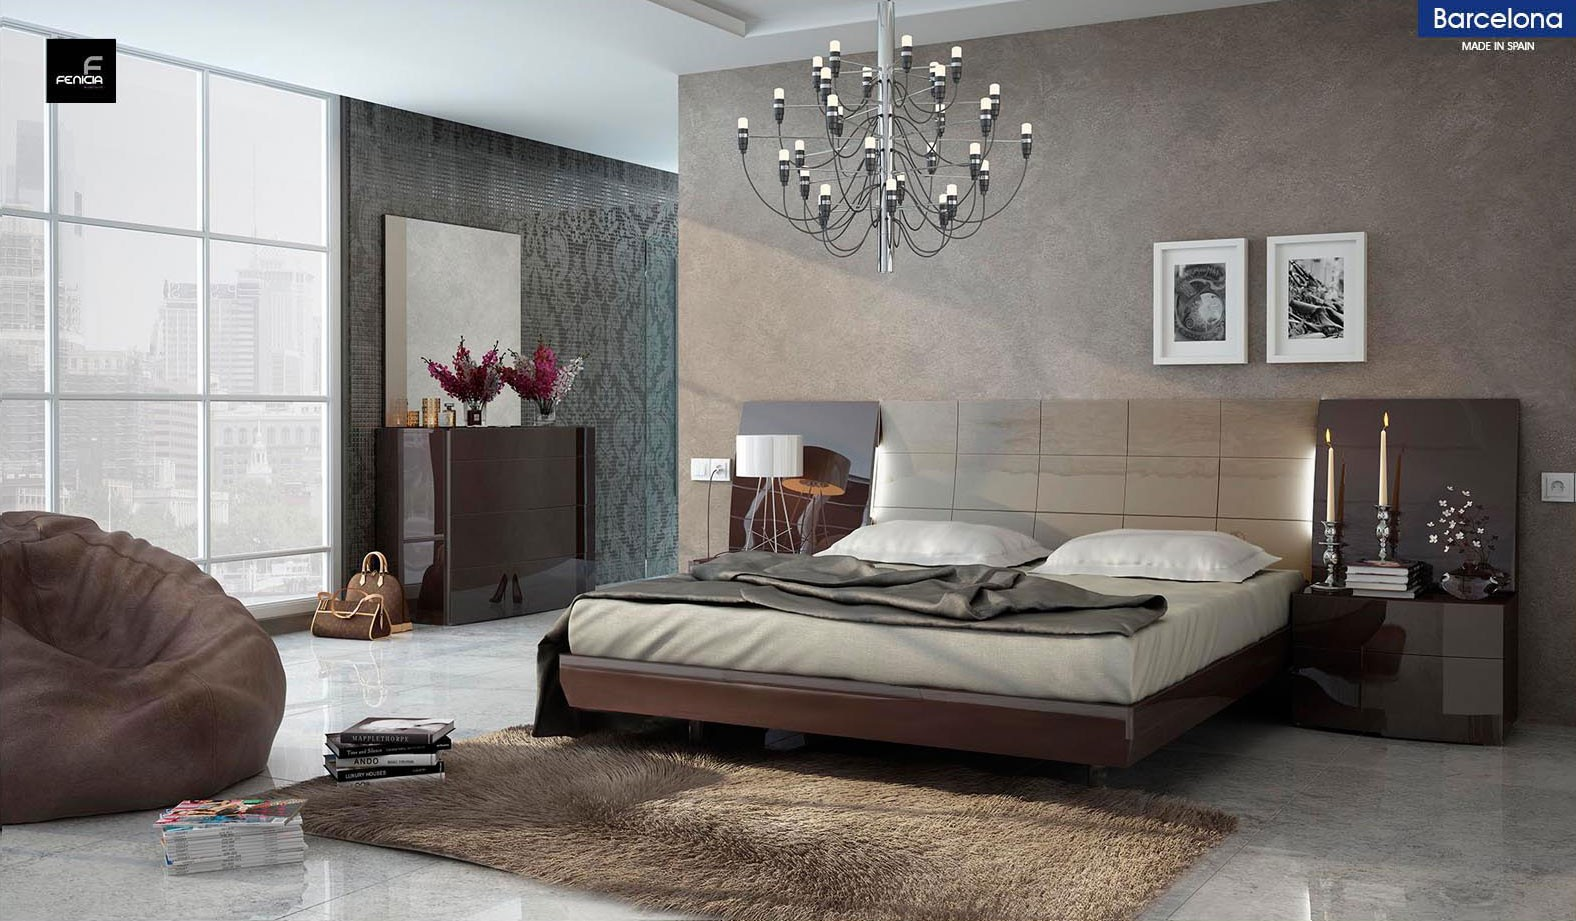 Barcelona Modern Bedroom Set in Brown Lacquer Finish